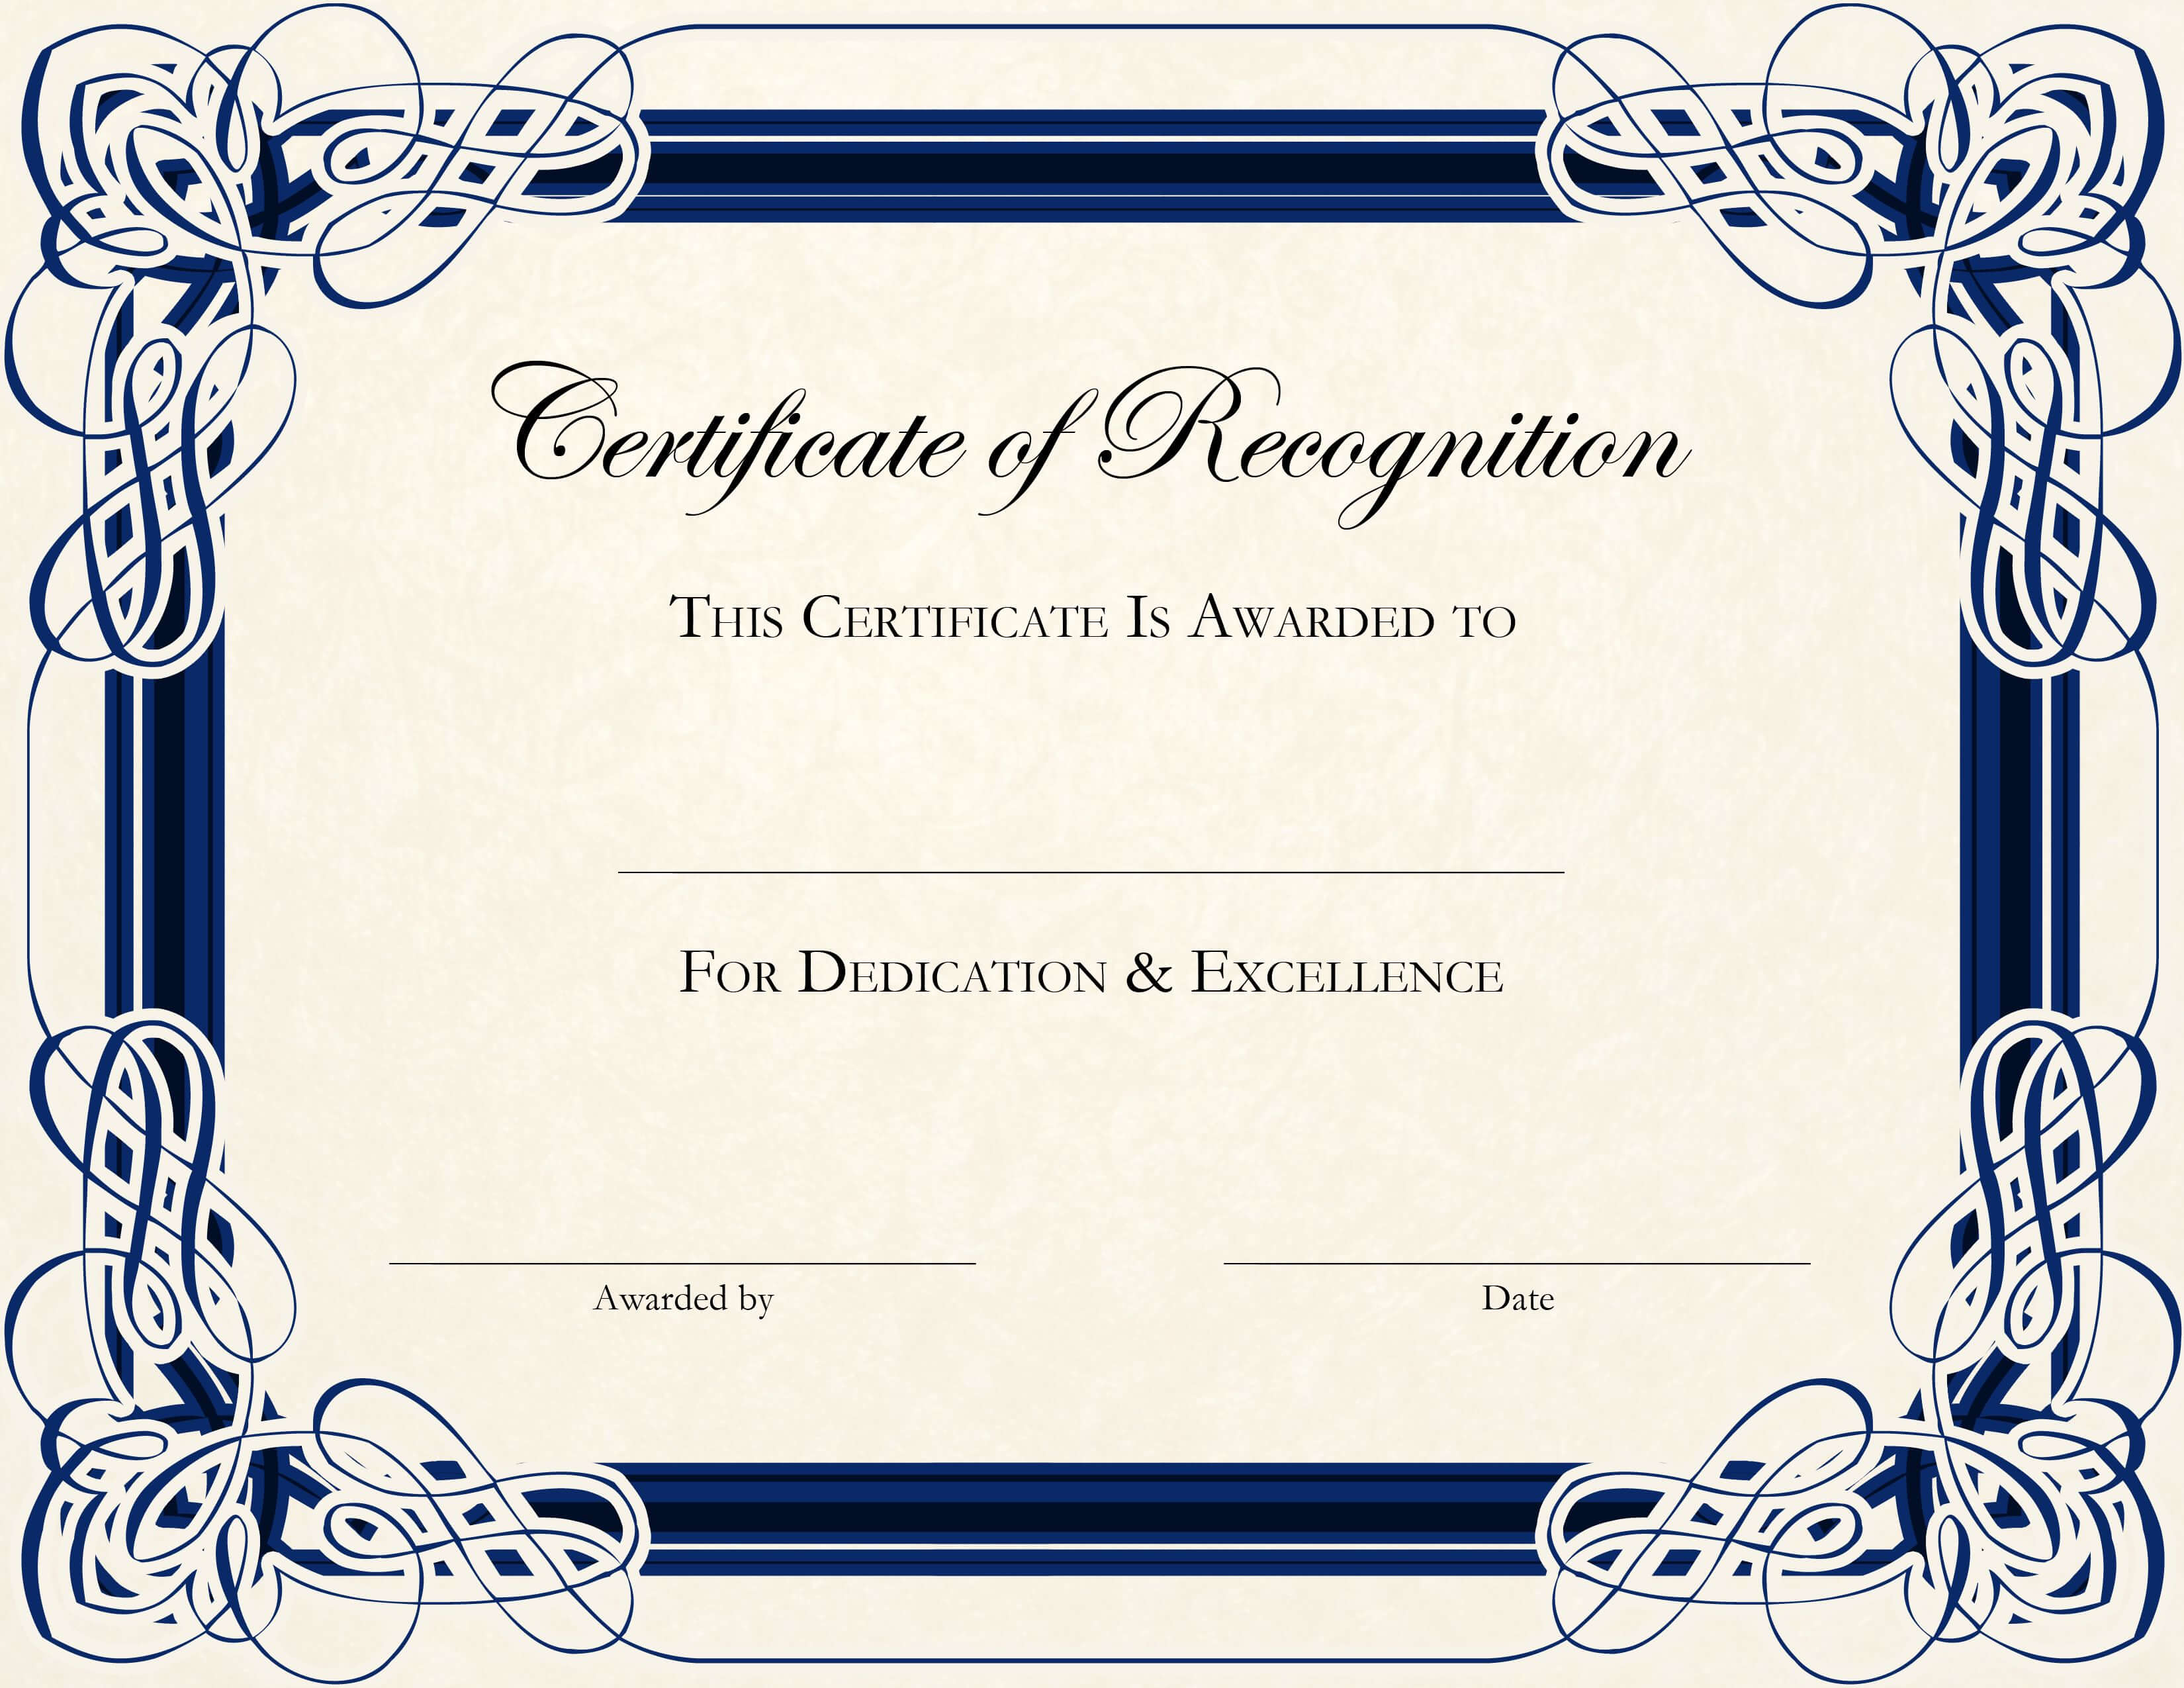 Certificate Template Designs Recognition Docs | Certificate With Regard To Printable Certificate Of Recognition Templates Free